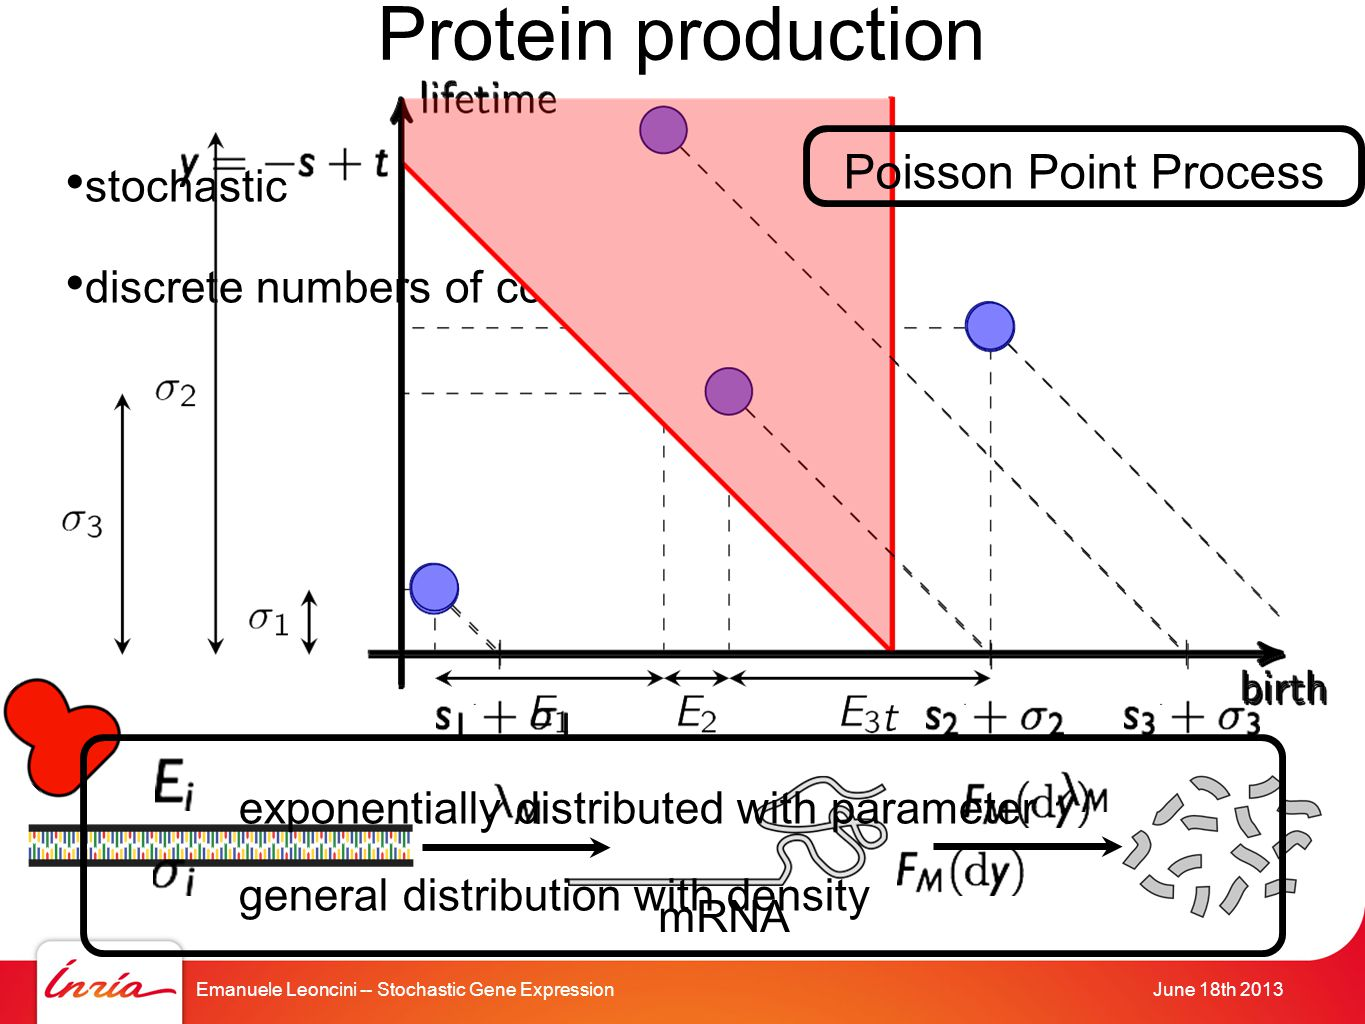 Emanuele Leoncini -- Stochastic Gene ExpressionJune 18th 2013 Protein production stochastic discrete numbers of components mRNA exponentially distributed with parameter general distribution with density Poisson Point Process